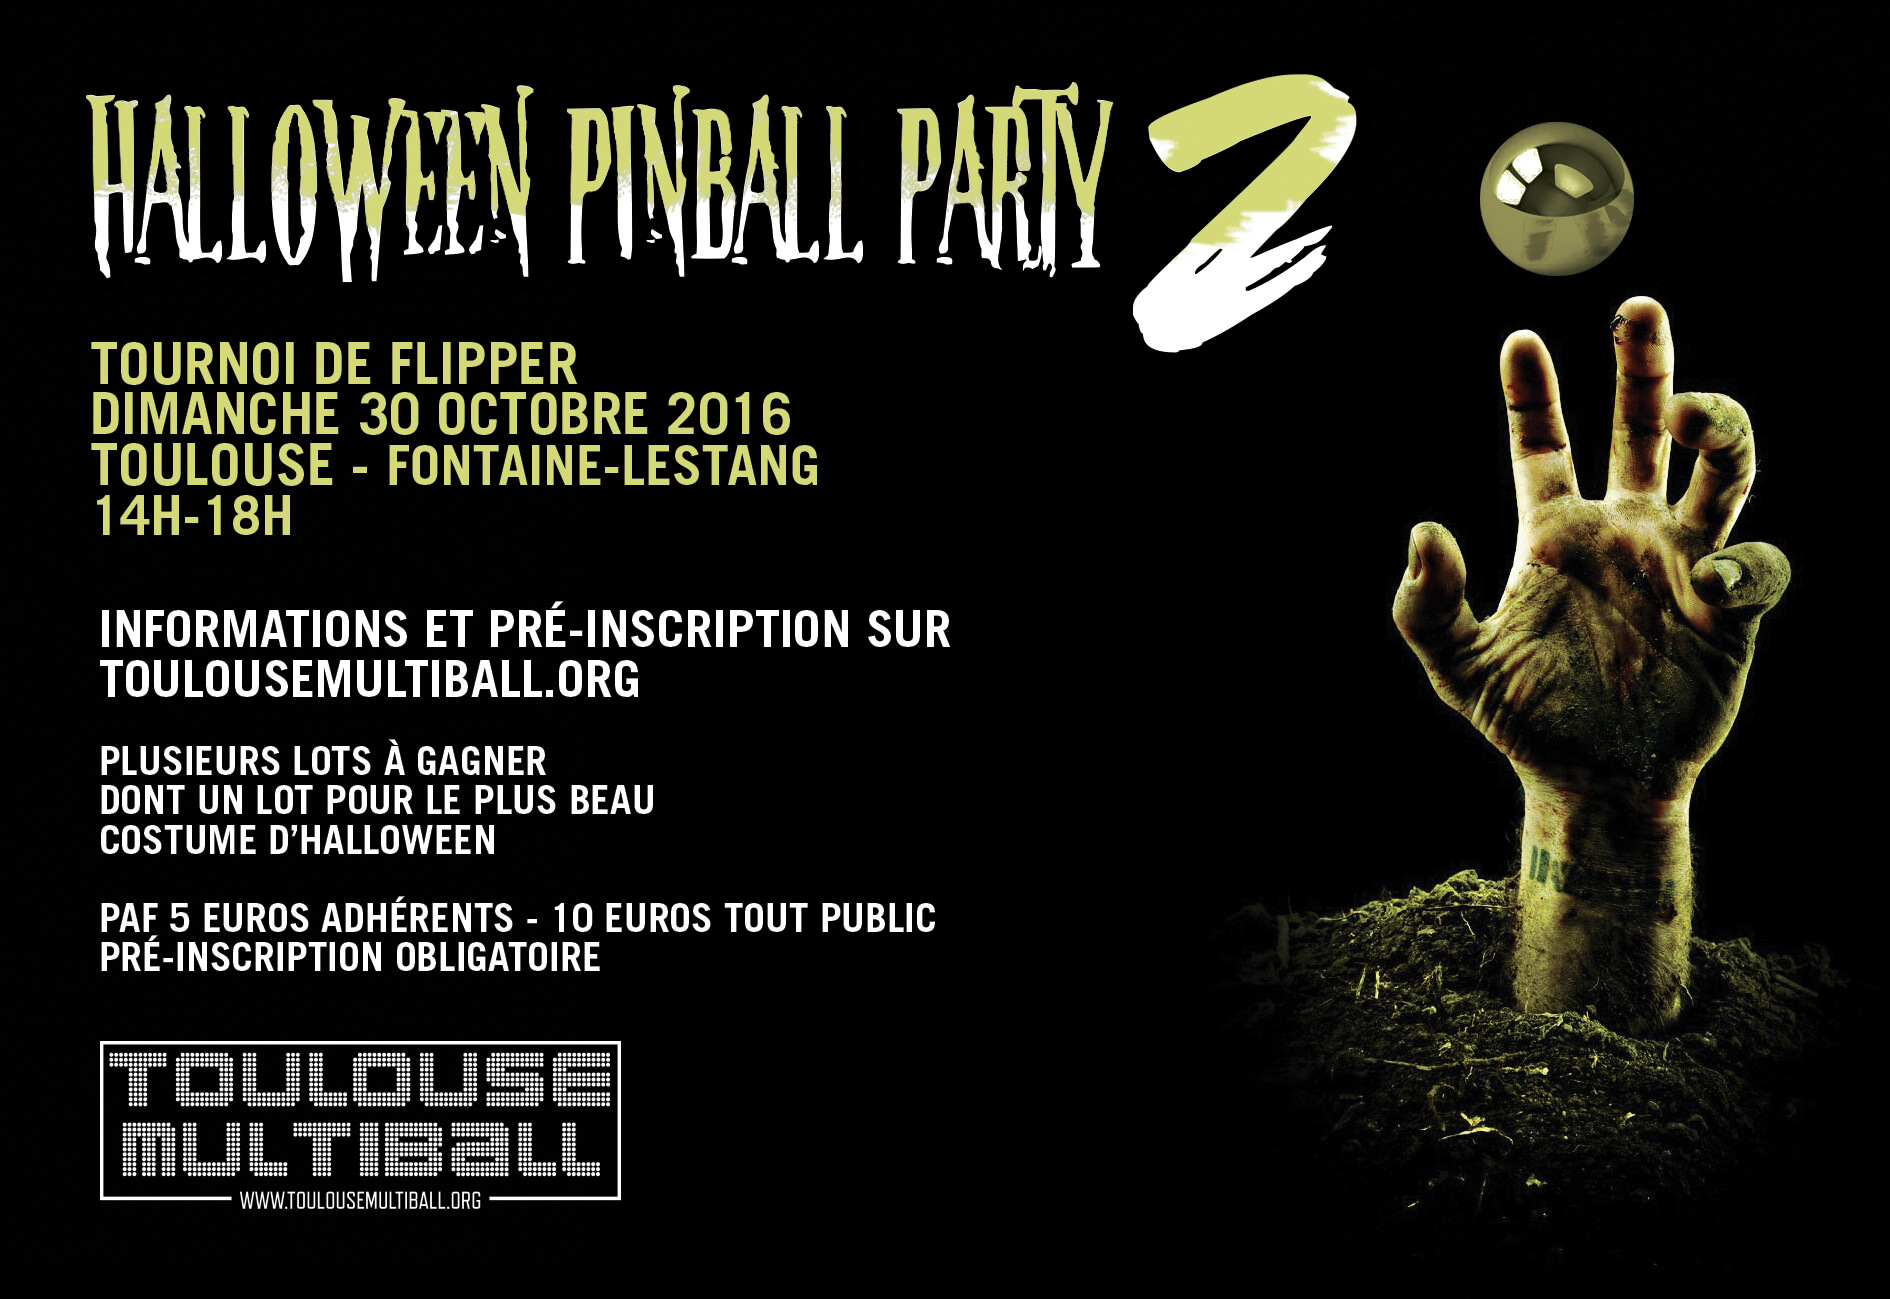 halloweenpinballparty2